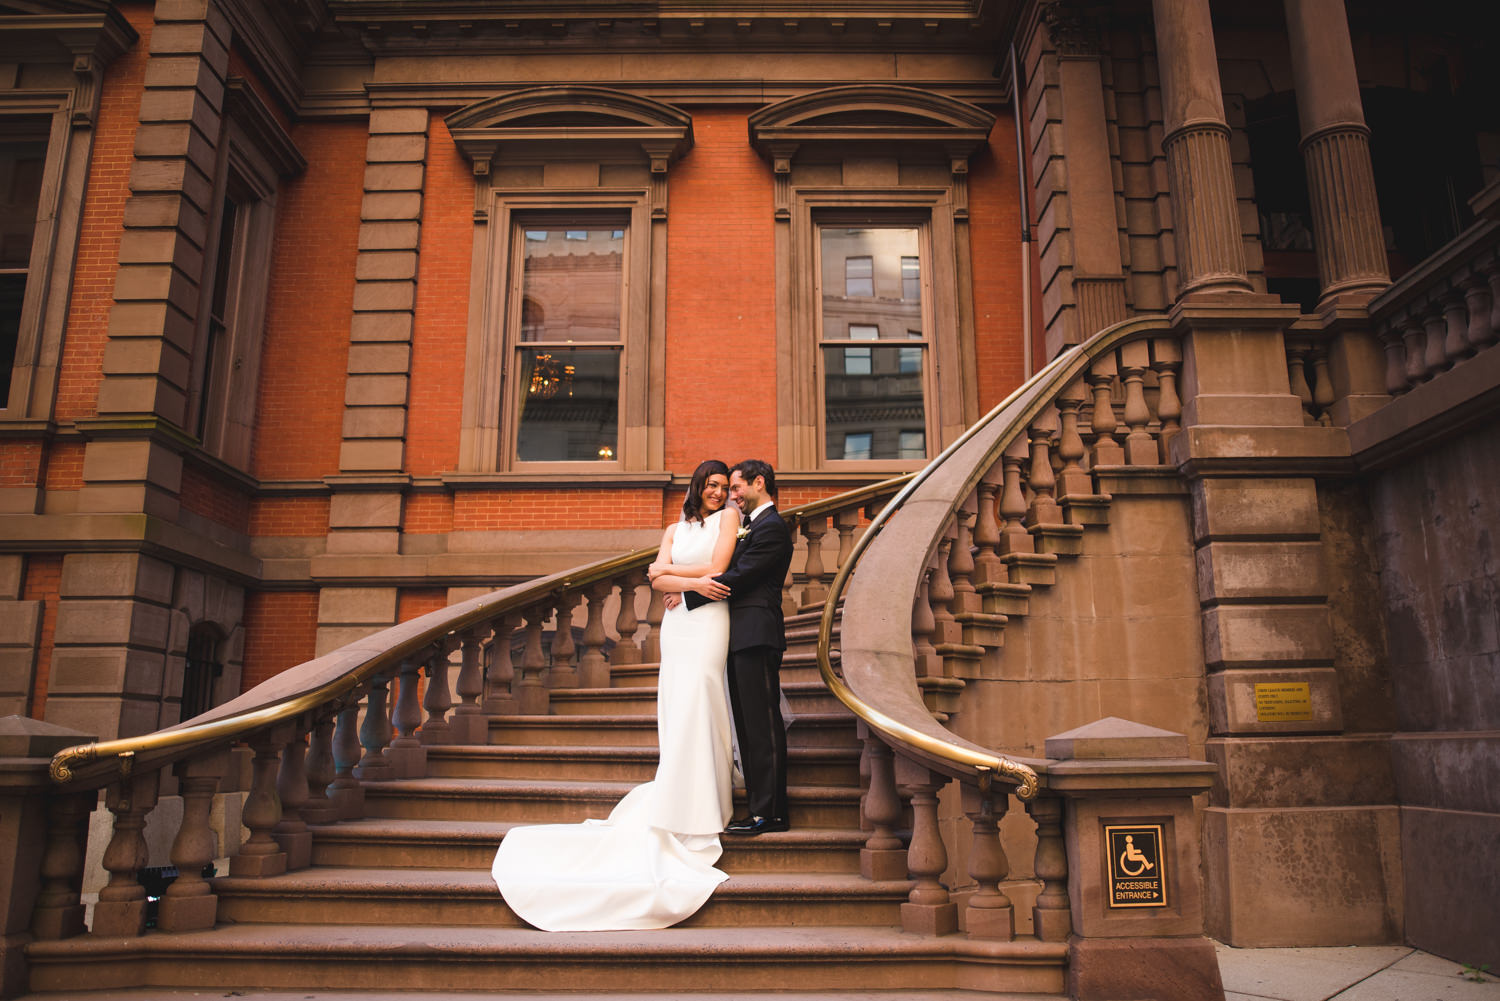 Elegant-Wedding-at-Academy-of-Music-in-Philadelphia-by-Gabriele-Stonyte-Photography-9.jpg